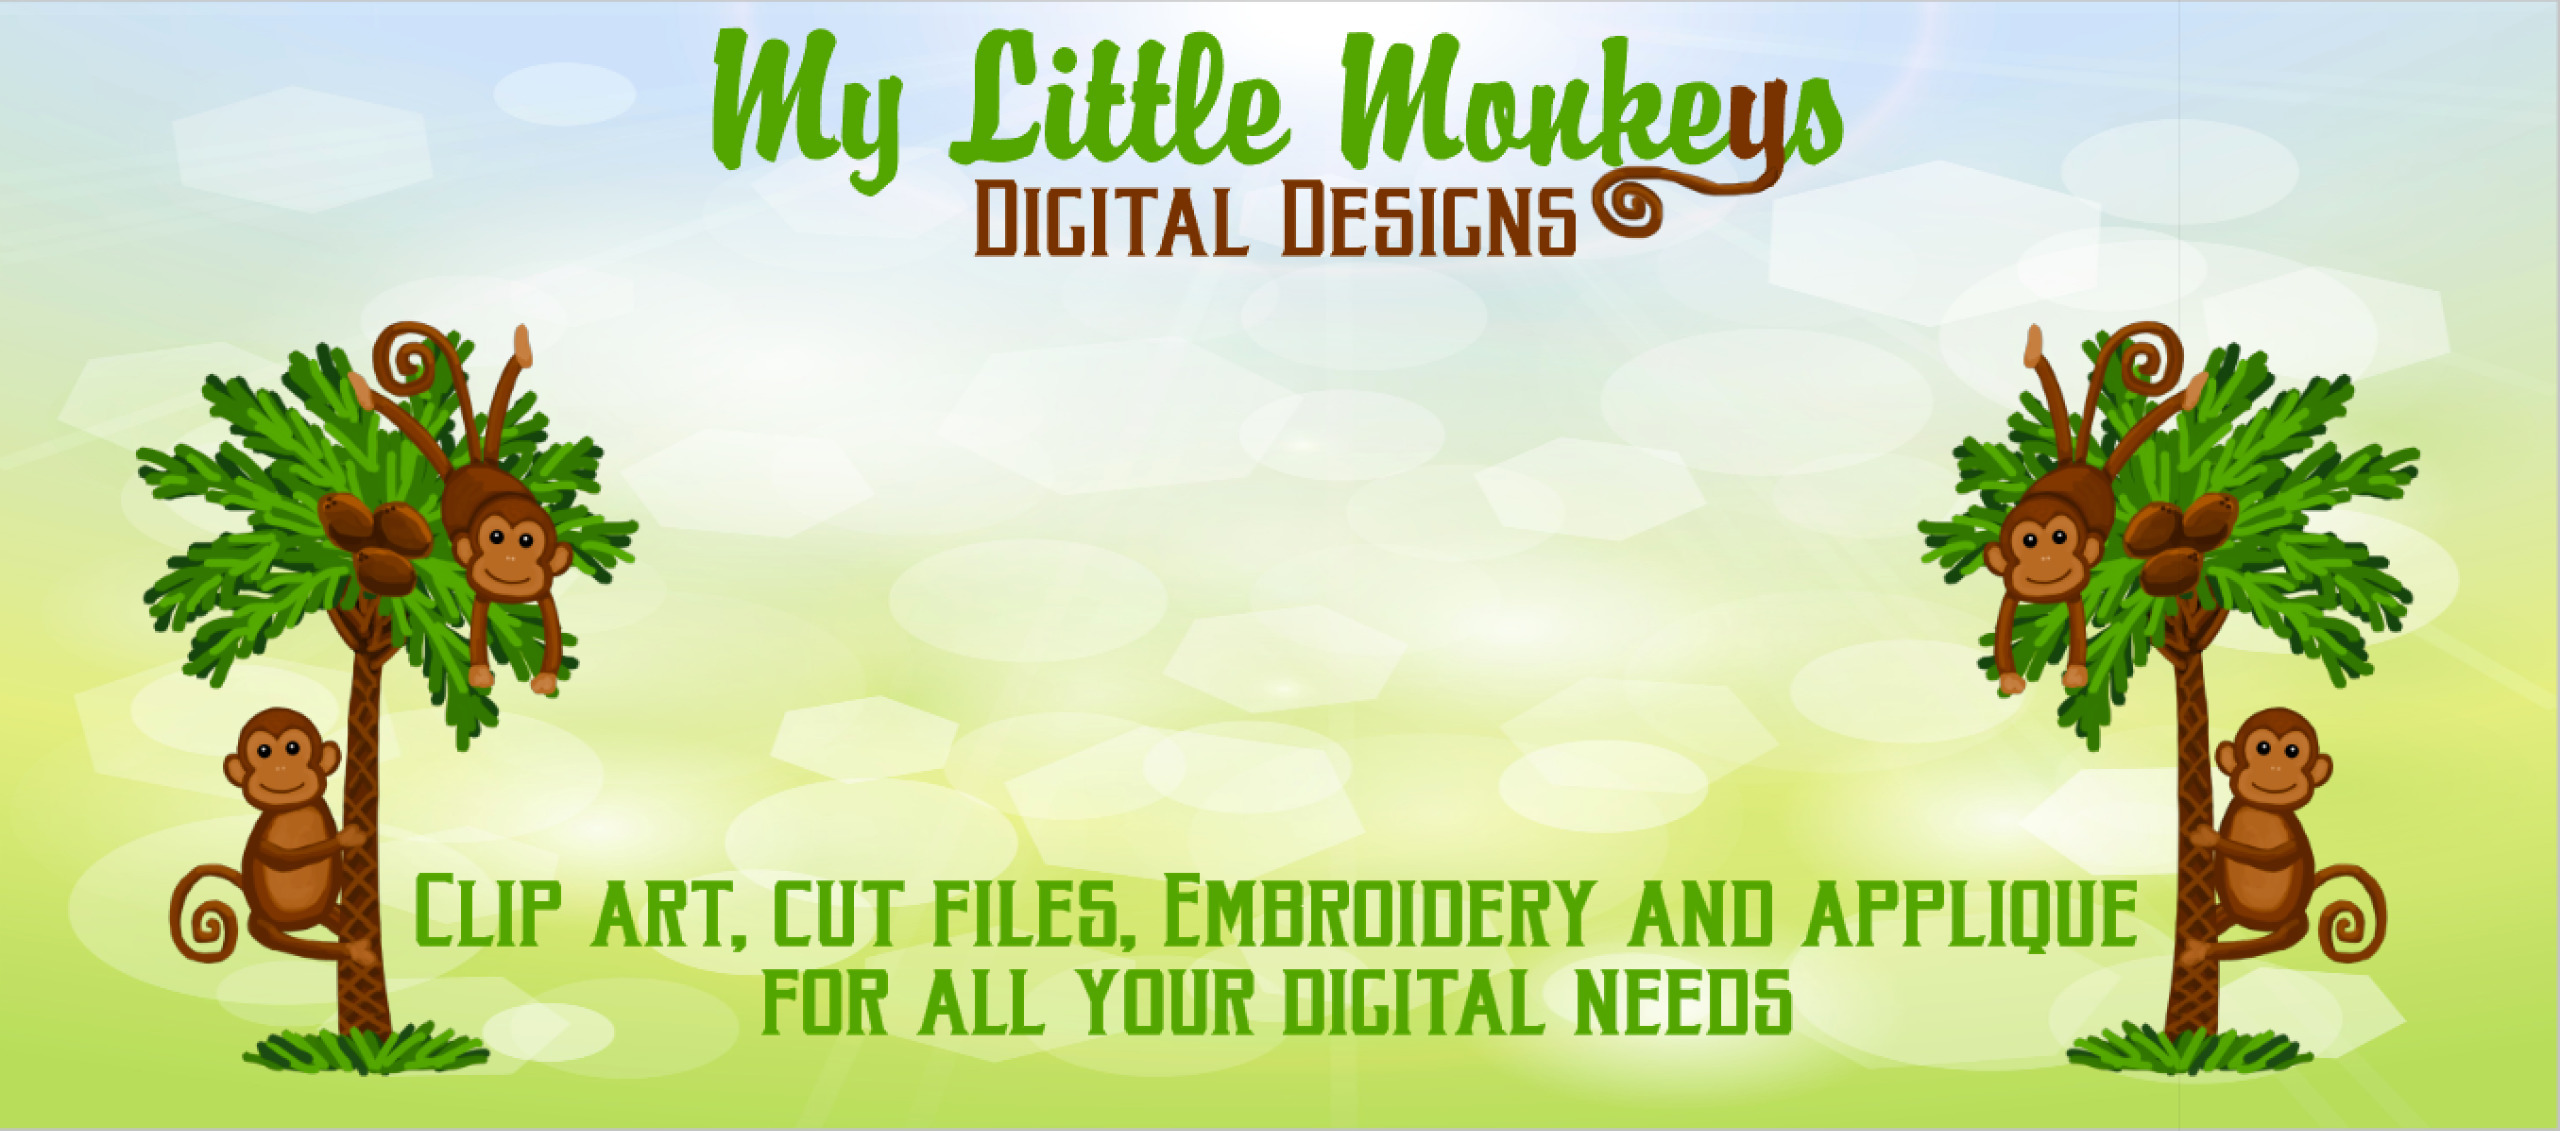 (@mylittlemonkeys) Cover Image